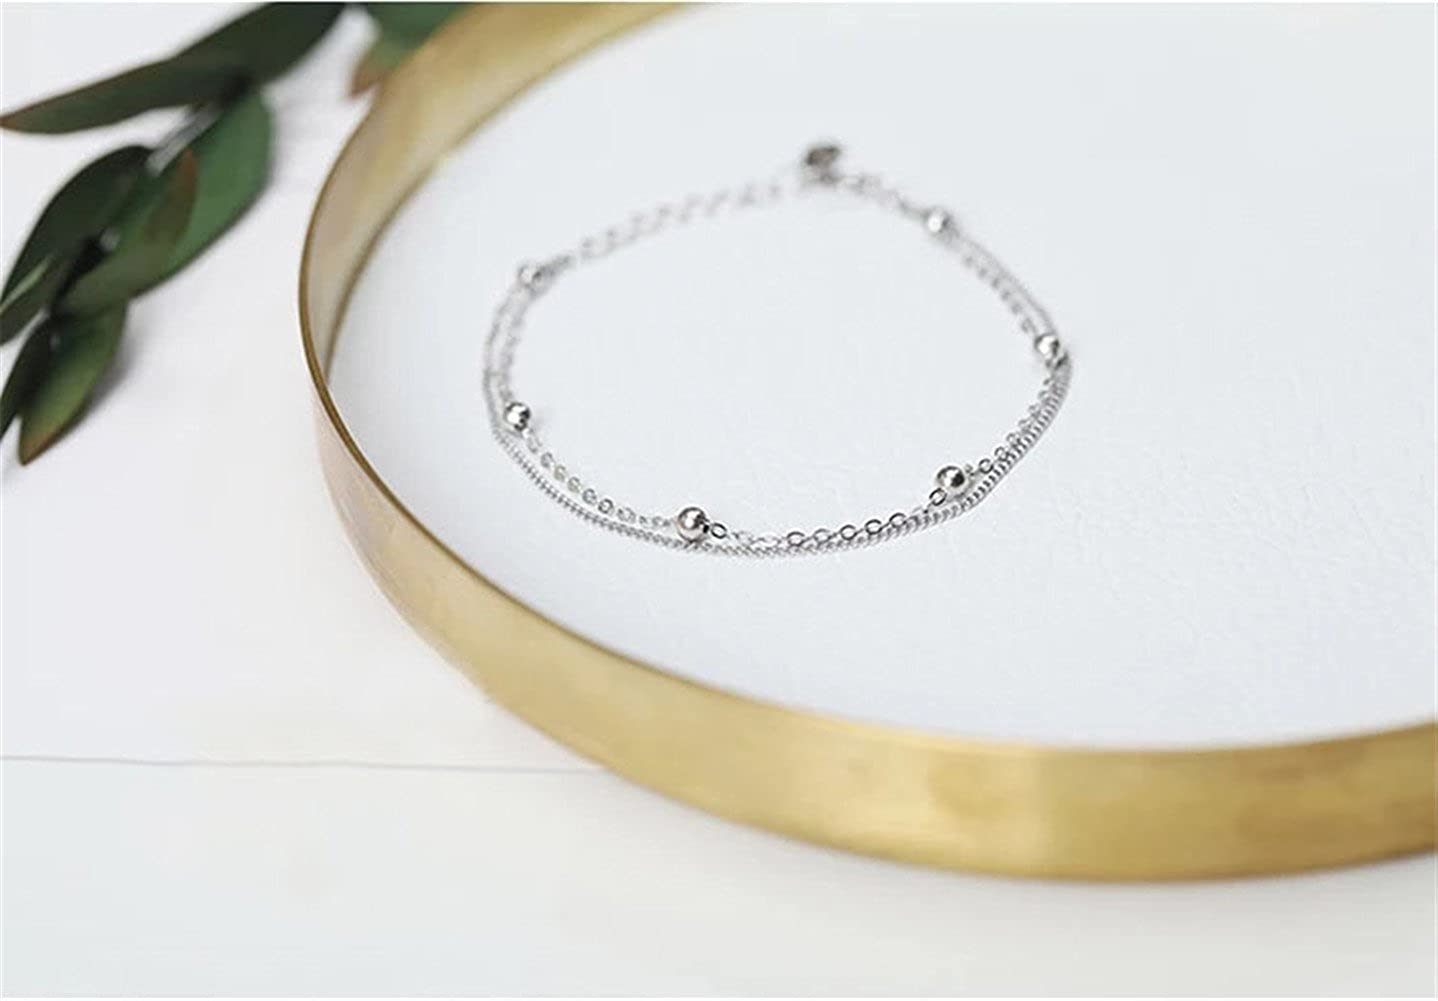 7241b6829b3 Amazon.com: DIDa Sterling Silver Bracelet for Women Simple Adjustable  Layered Chain Bracelet: Jewelry